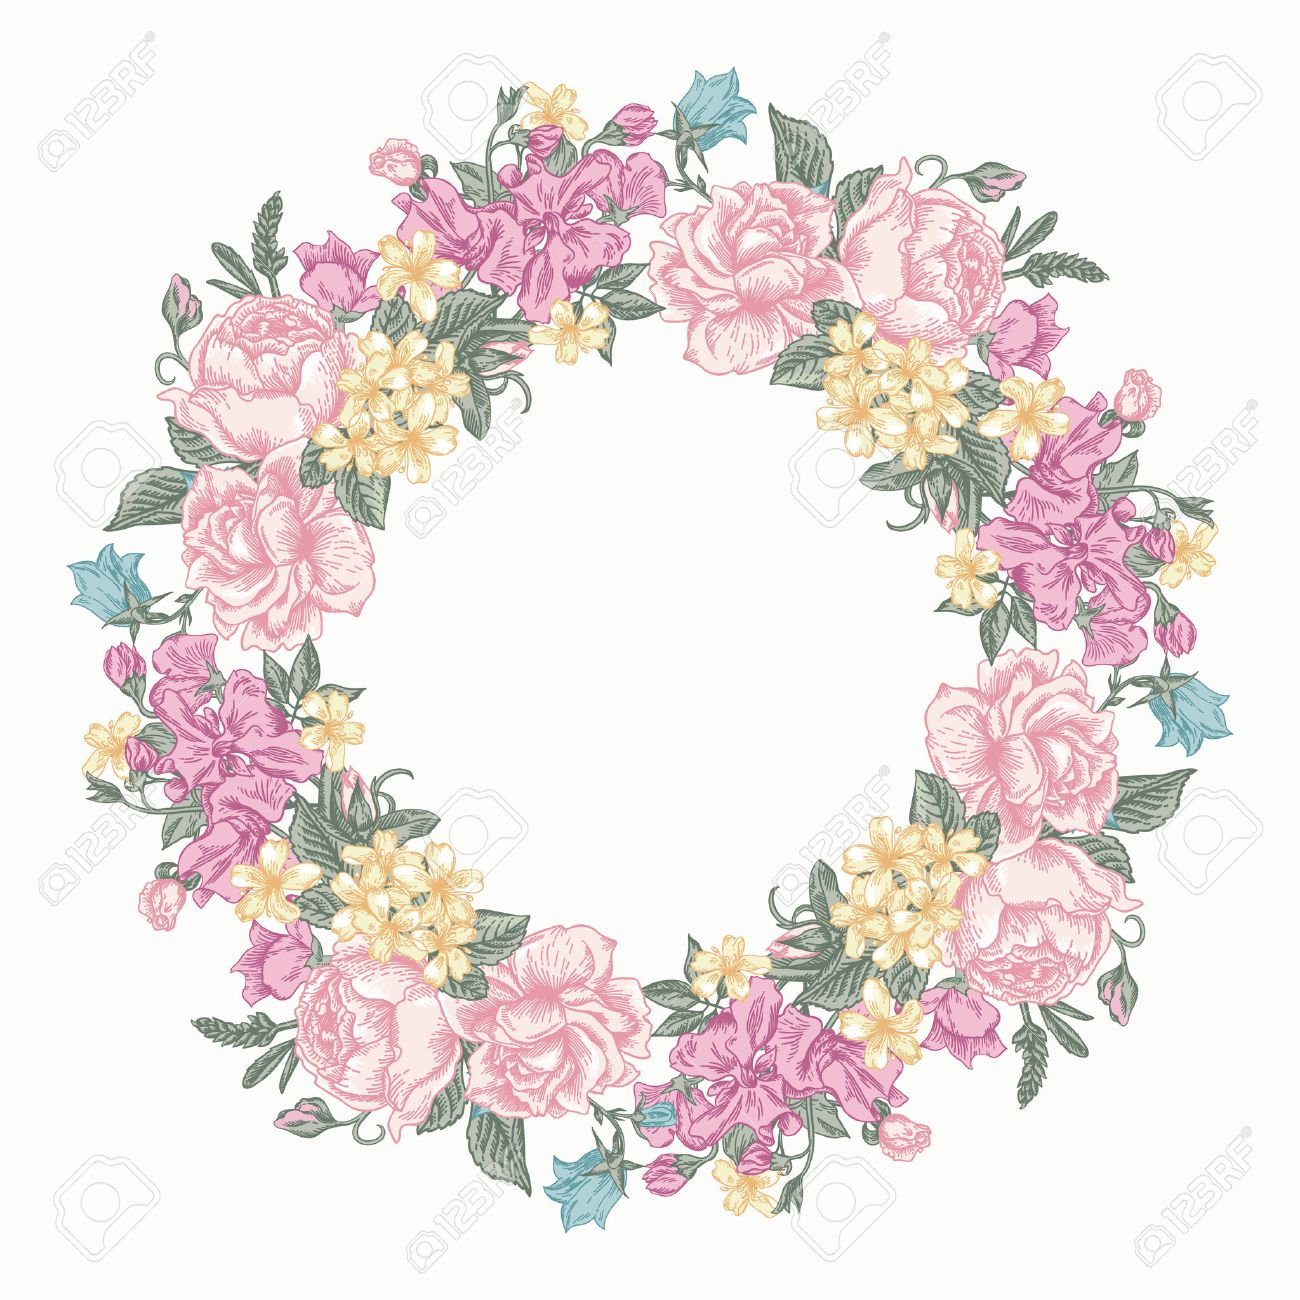 Invitation card with floral round wreath in pastel colors colors invitation card with floral round wreath in pastel colors colors roses decorative peas stopboris Images